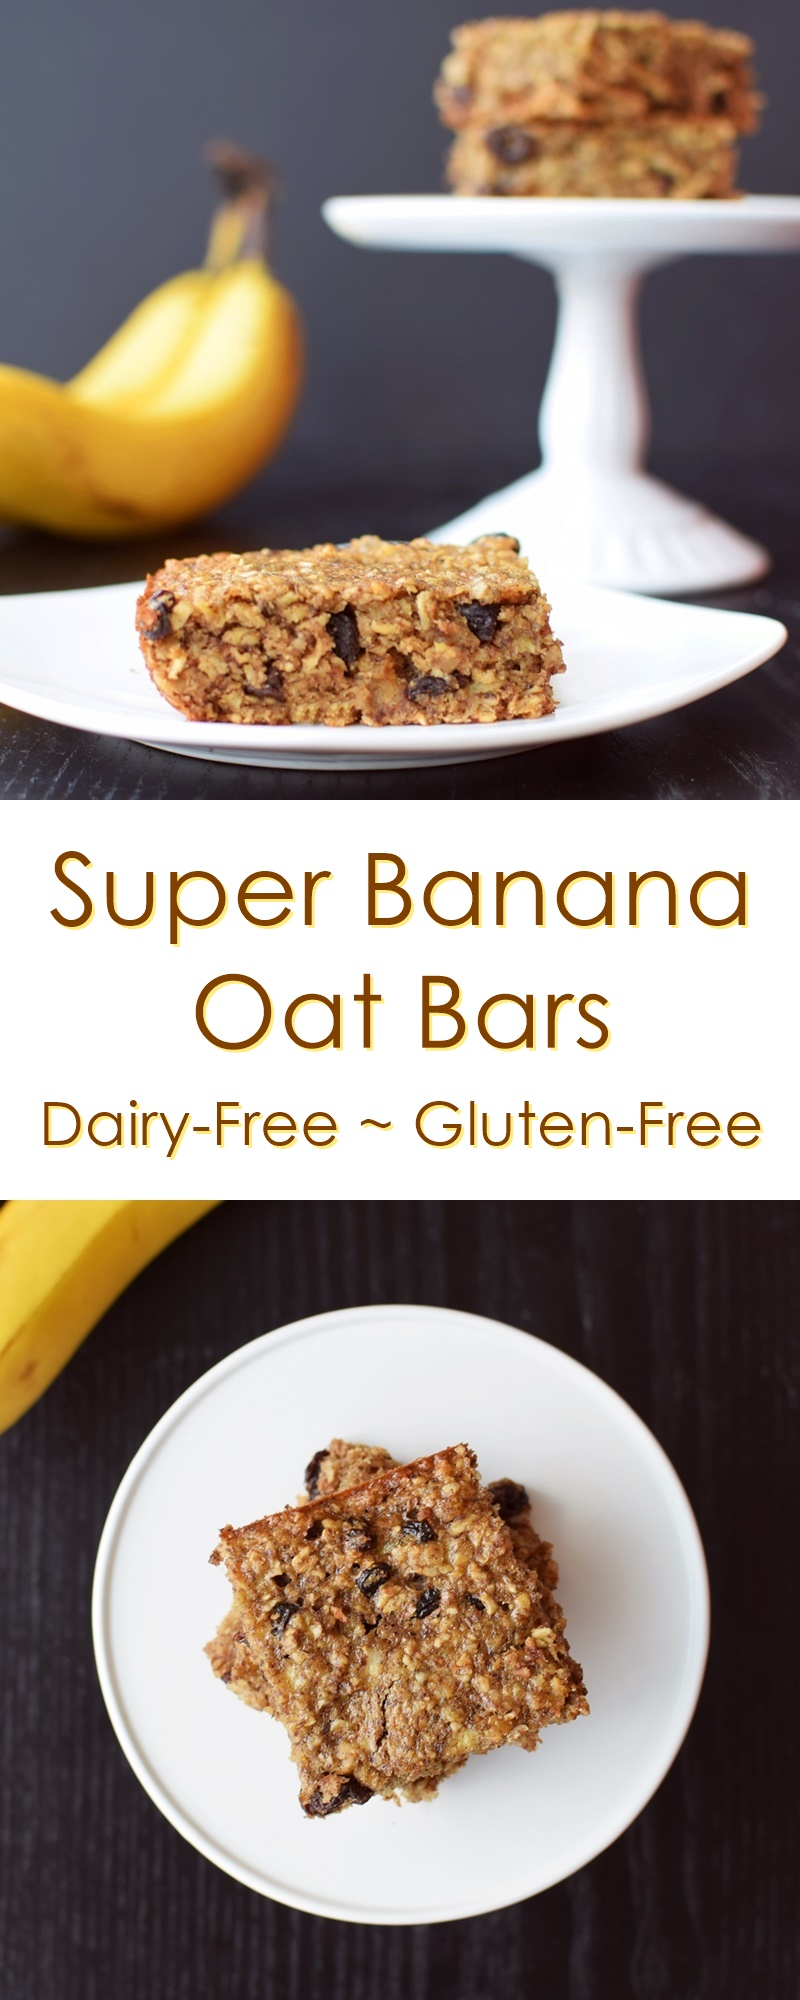 Super Cinnamon Raisin Banana Oat Bars Recipe (dairy-free, gluten-free, healthy)